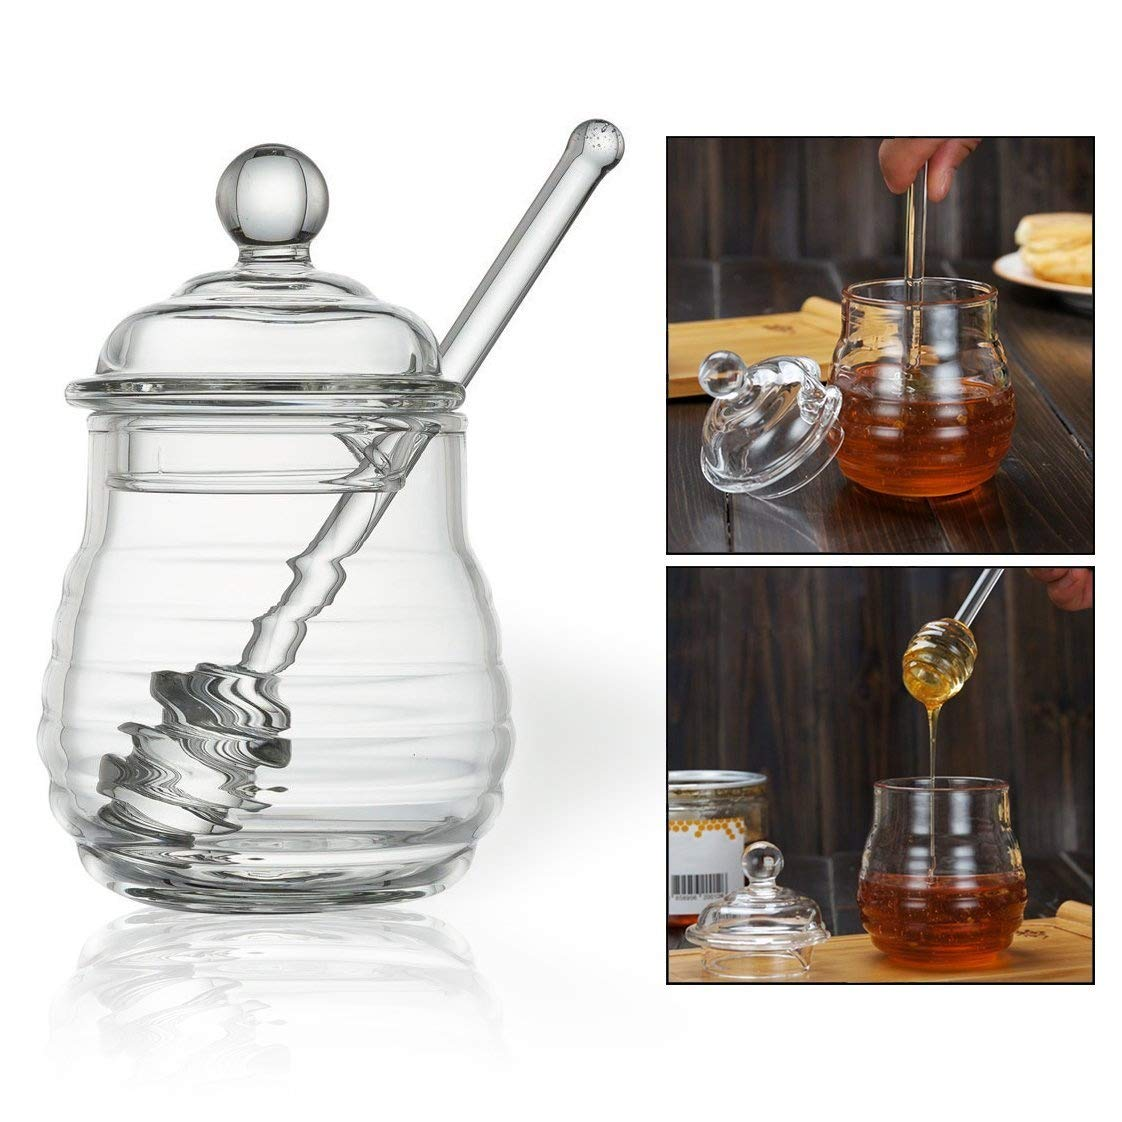 OFKPO Honey Pot With Dipper Glass Honey Jar And Dipper Set